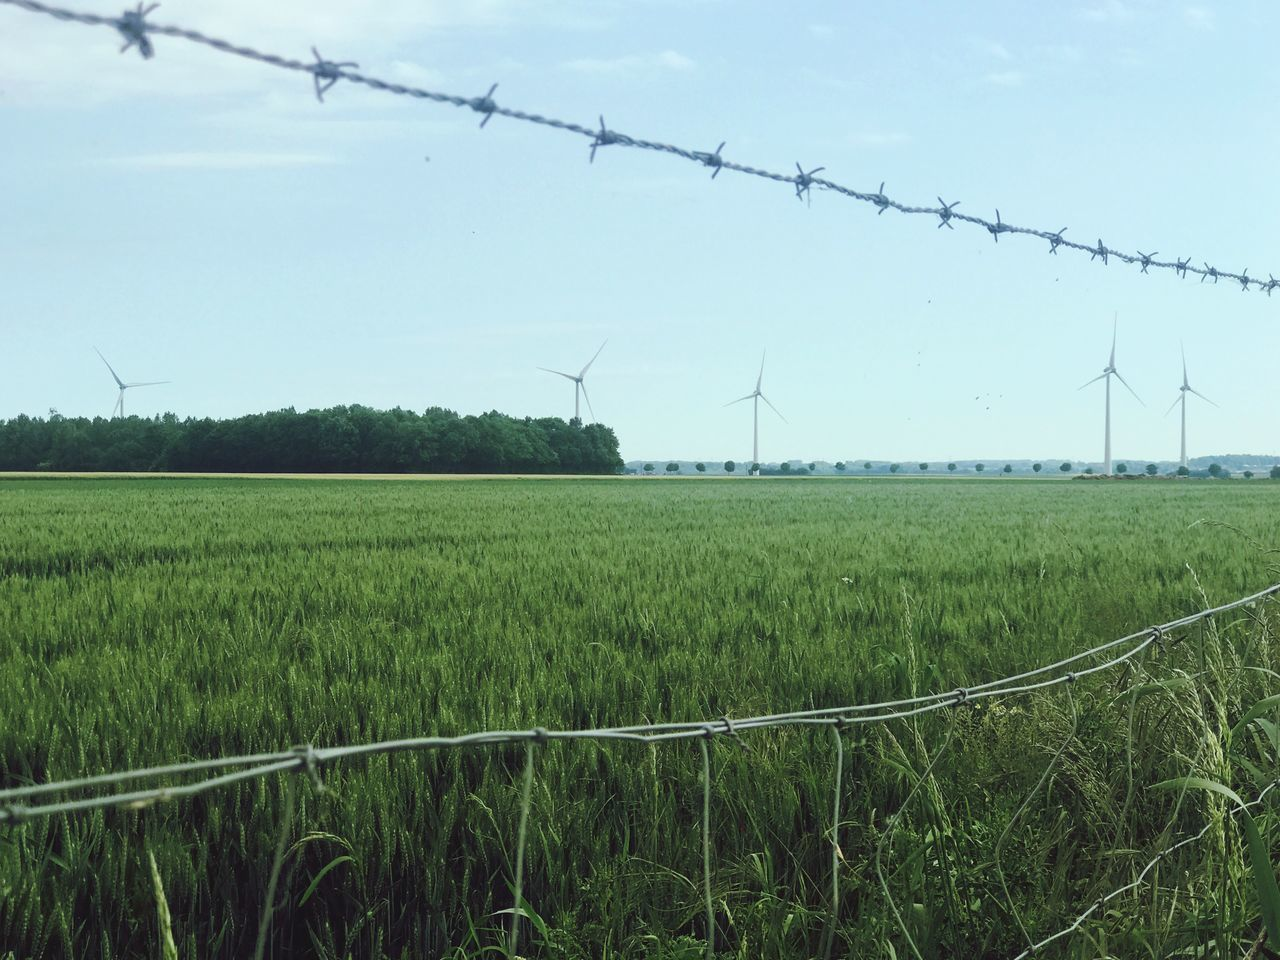 Fuel And Power Generation Field Alternative Energy Day Renewable Energy No People Outdoors Wind Turbine Wind Power Rural Scene Nature Sky Grass Power Supply Cable Windmill Landscape Electricity  Electricity Pylon Growth Windmills Windmill France